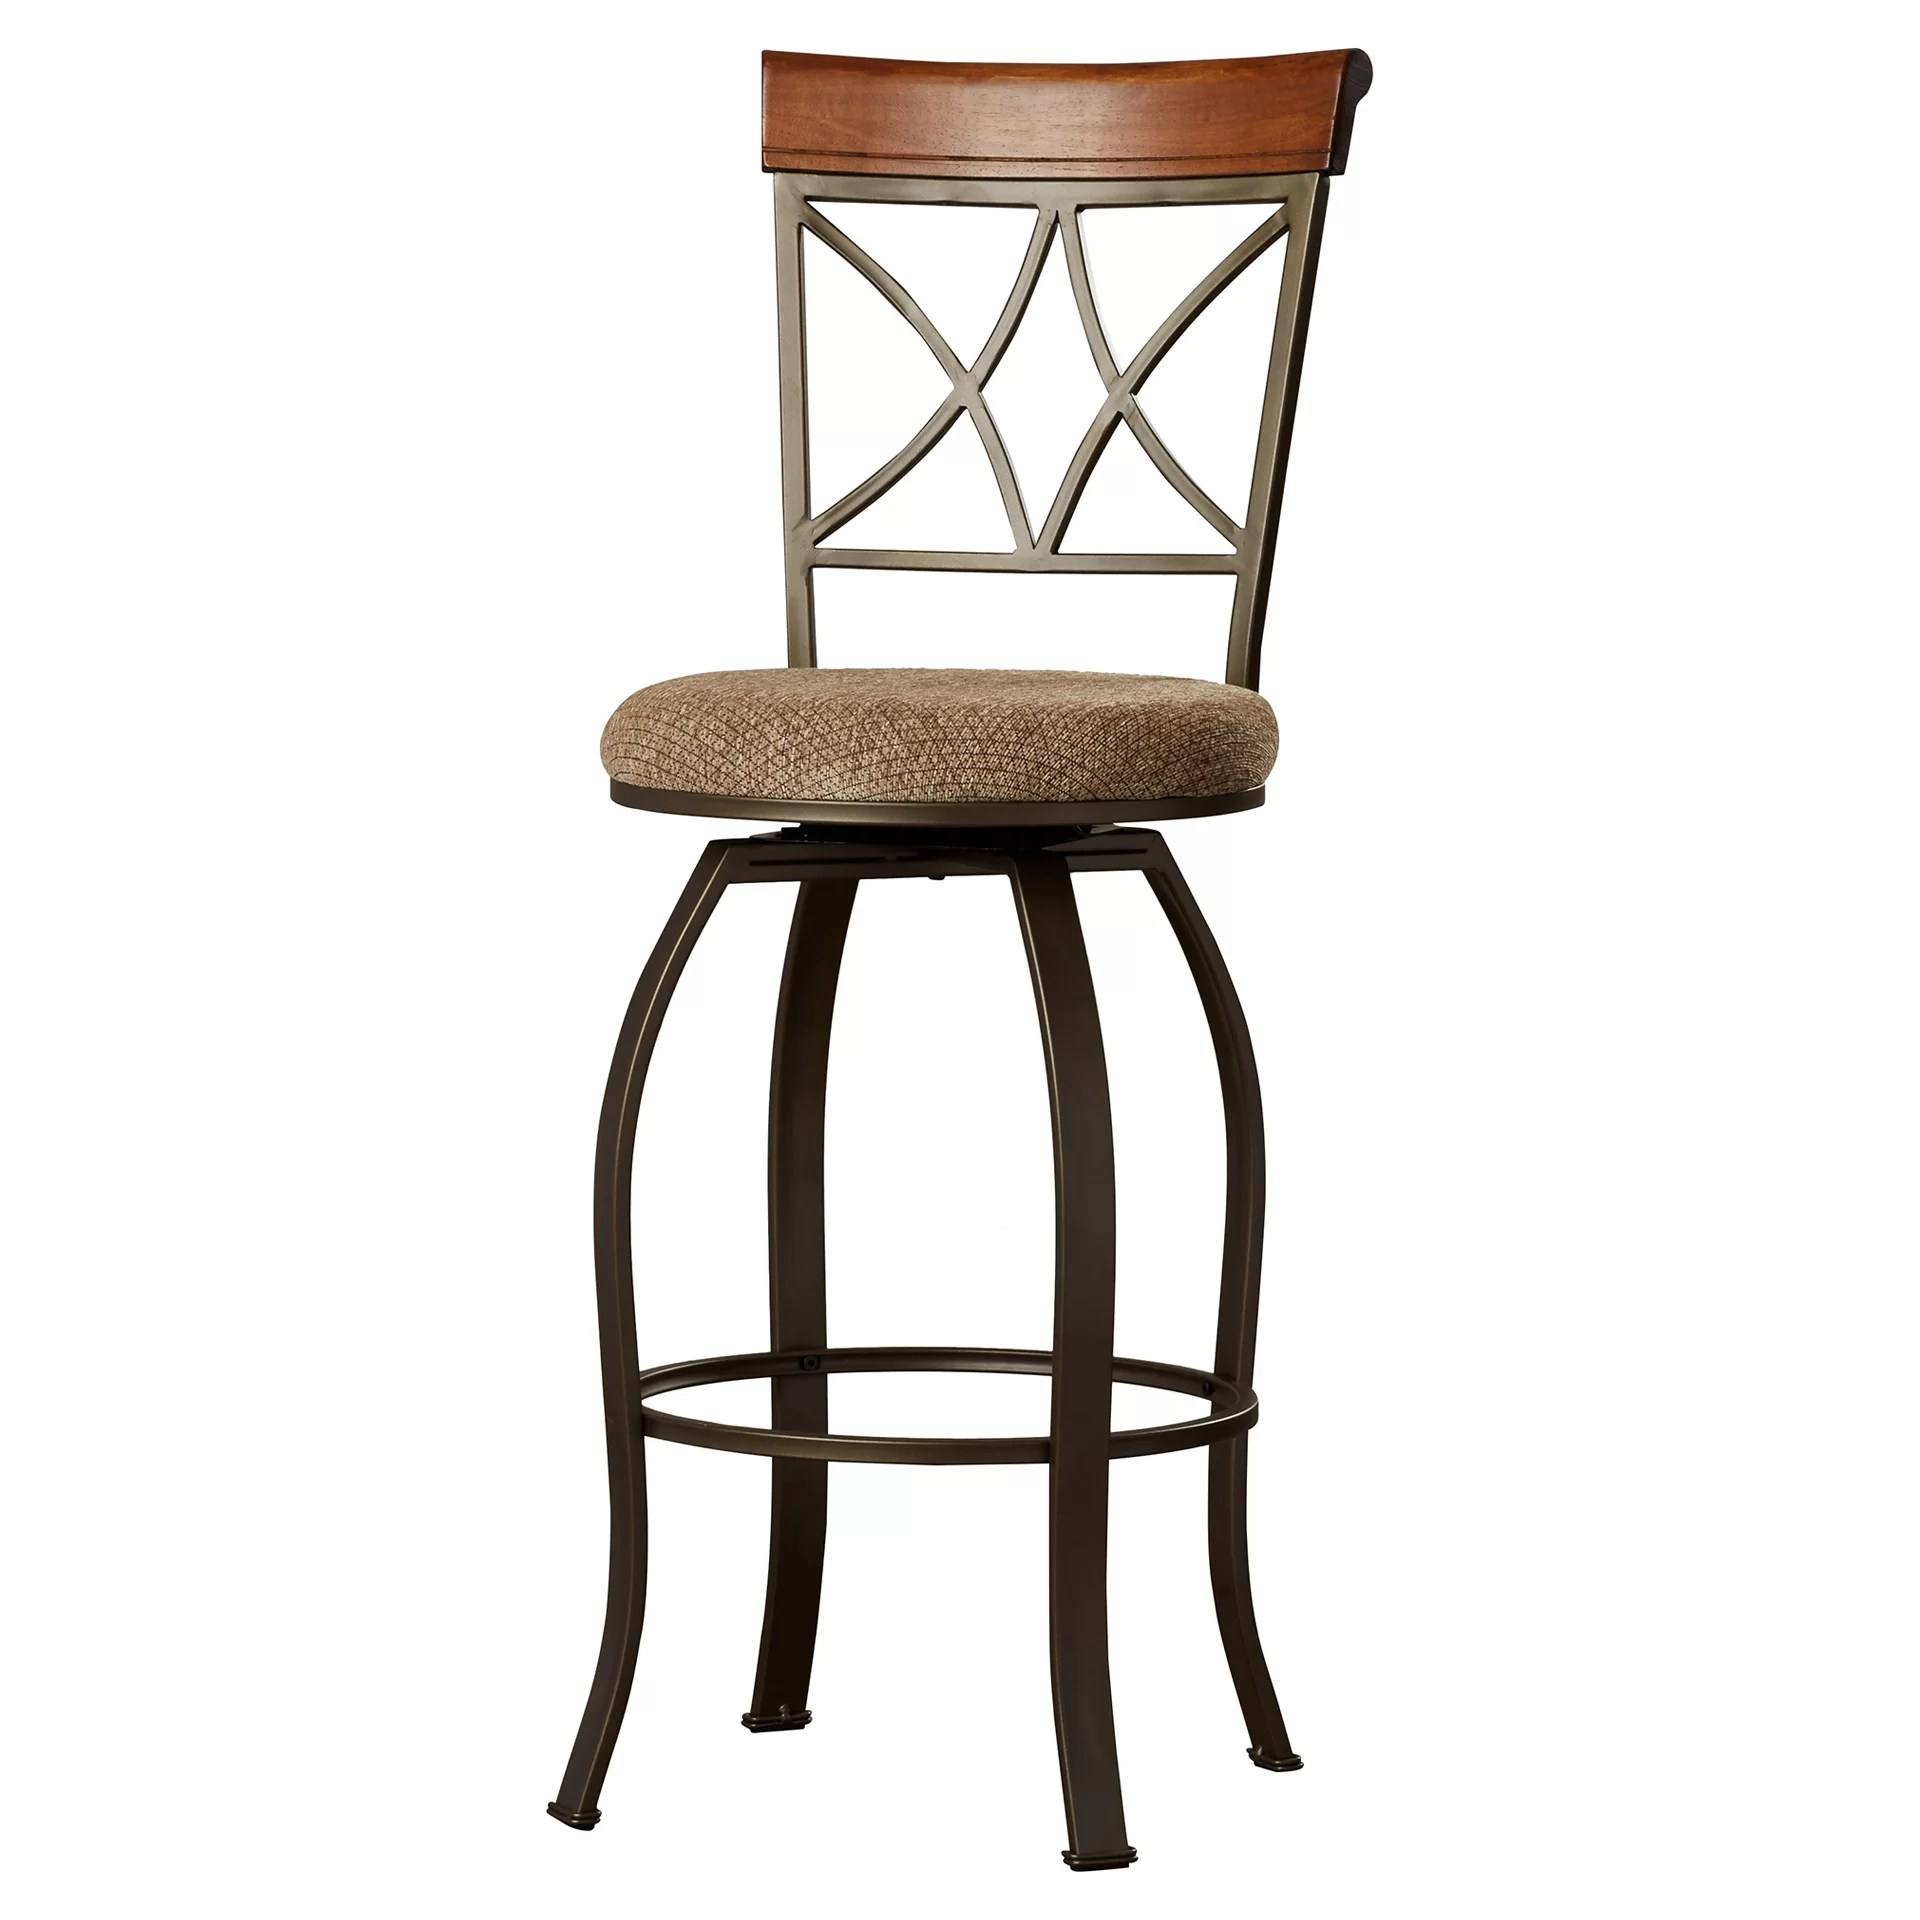 Bar And Stools For Home Charlton Home Follmer 29 Quot Swivel Bar Stool With Cushion